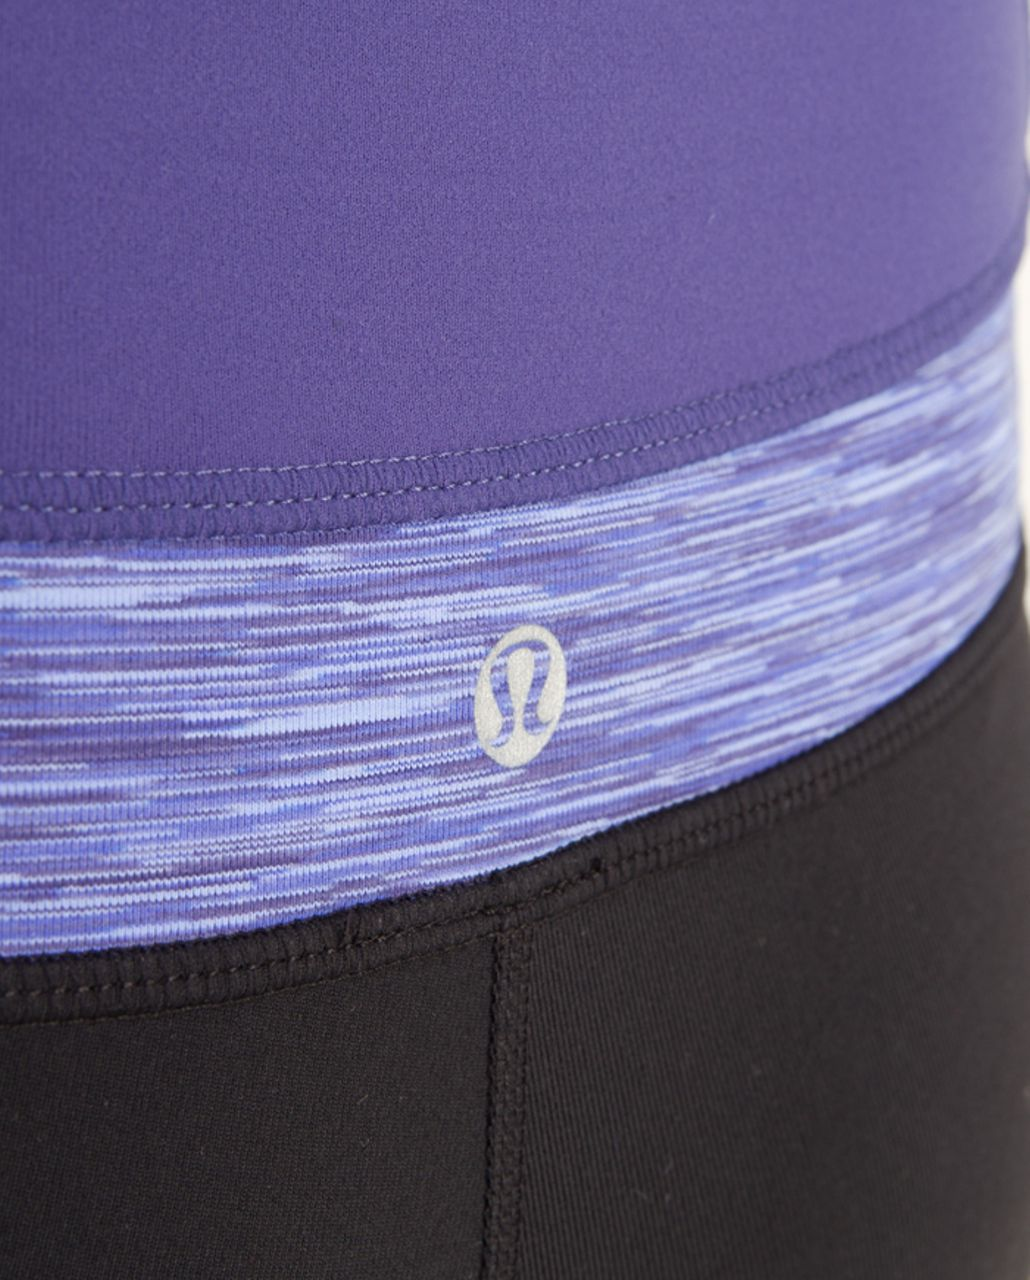 Lululemon Groove Pant (Tall) - Black /  Royalty /  Royalty Space Dye